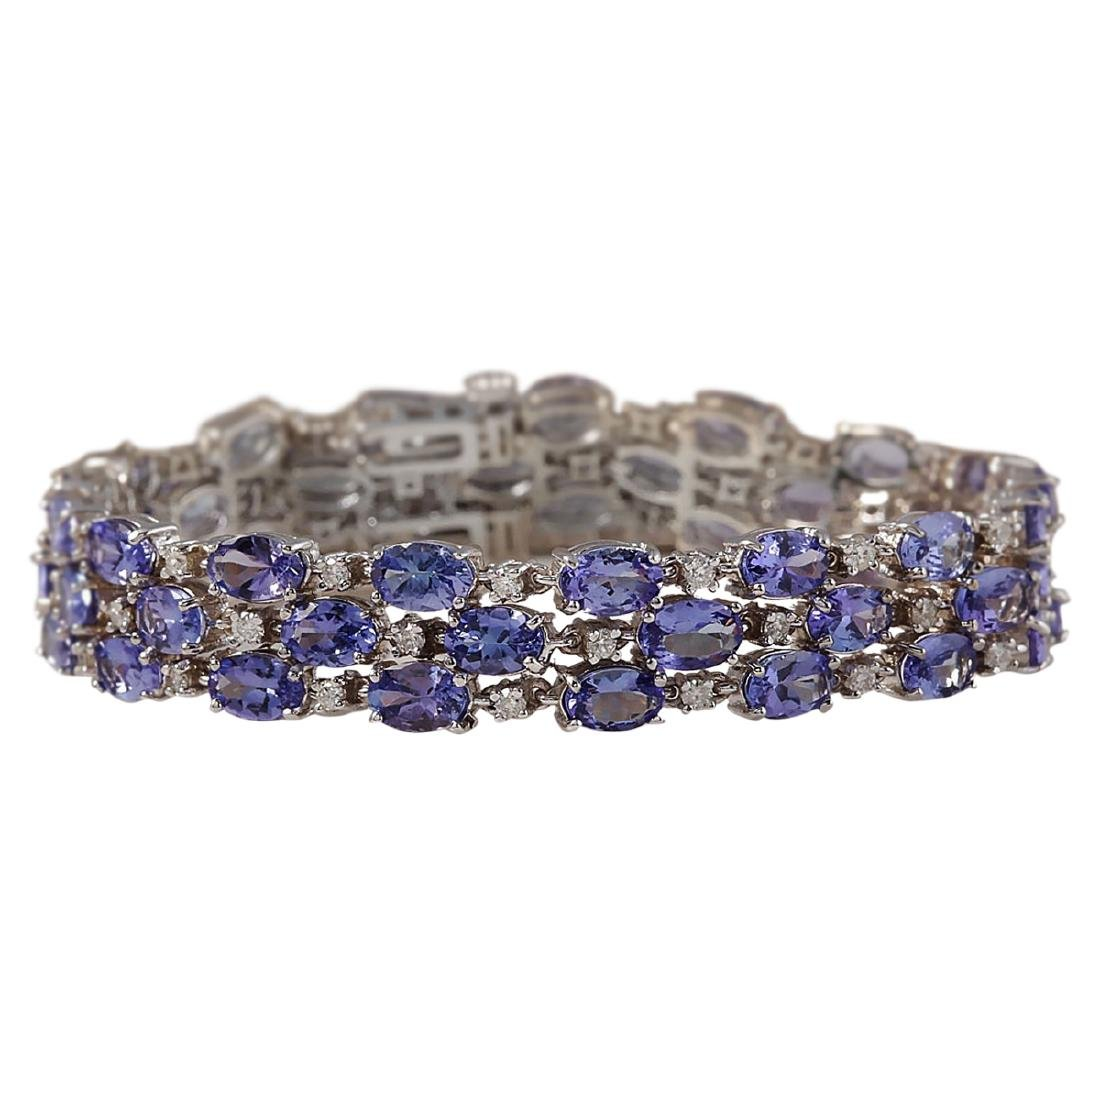 23.85 CTW Natural Tanzanite And Dimond Bracelet In 18K